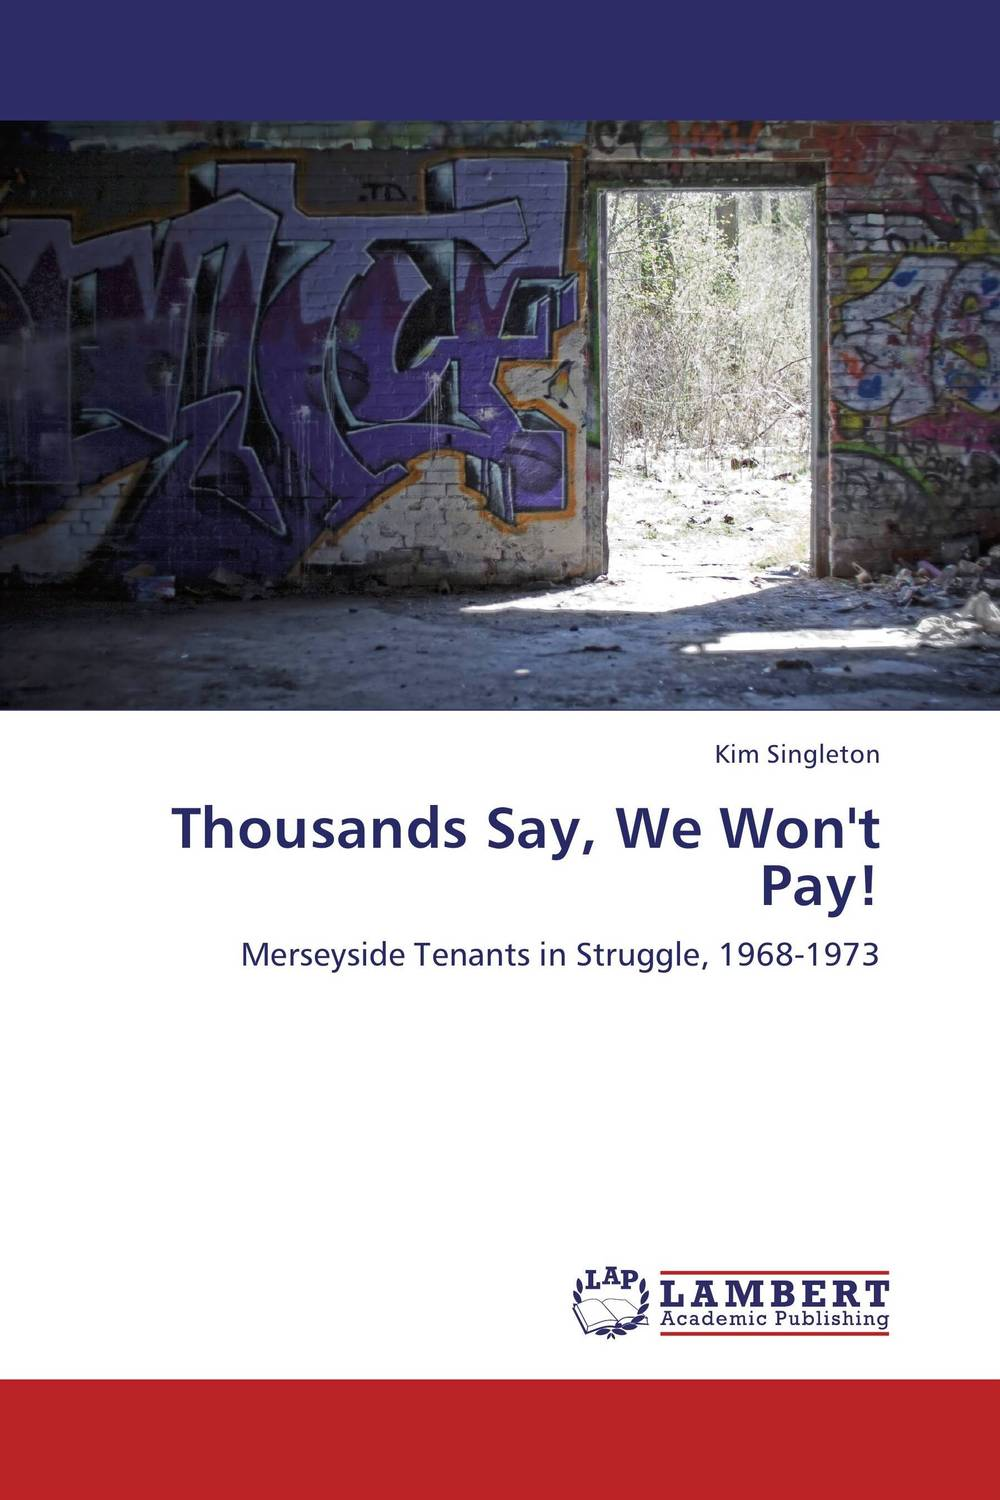 Thousands Say, We Won't Pay! utopia the art of political propaganda